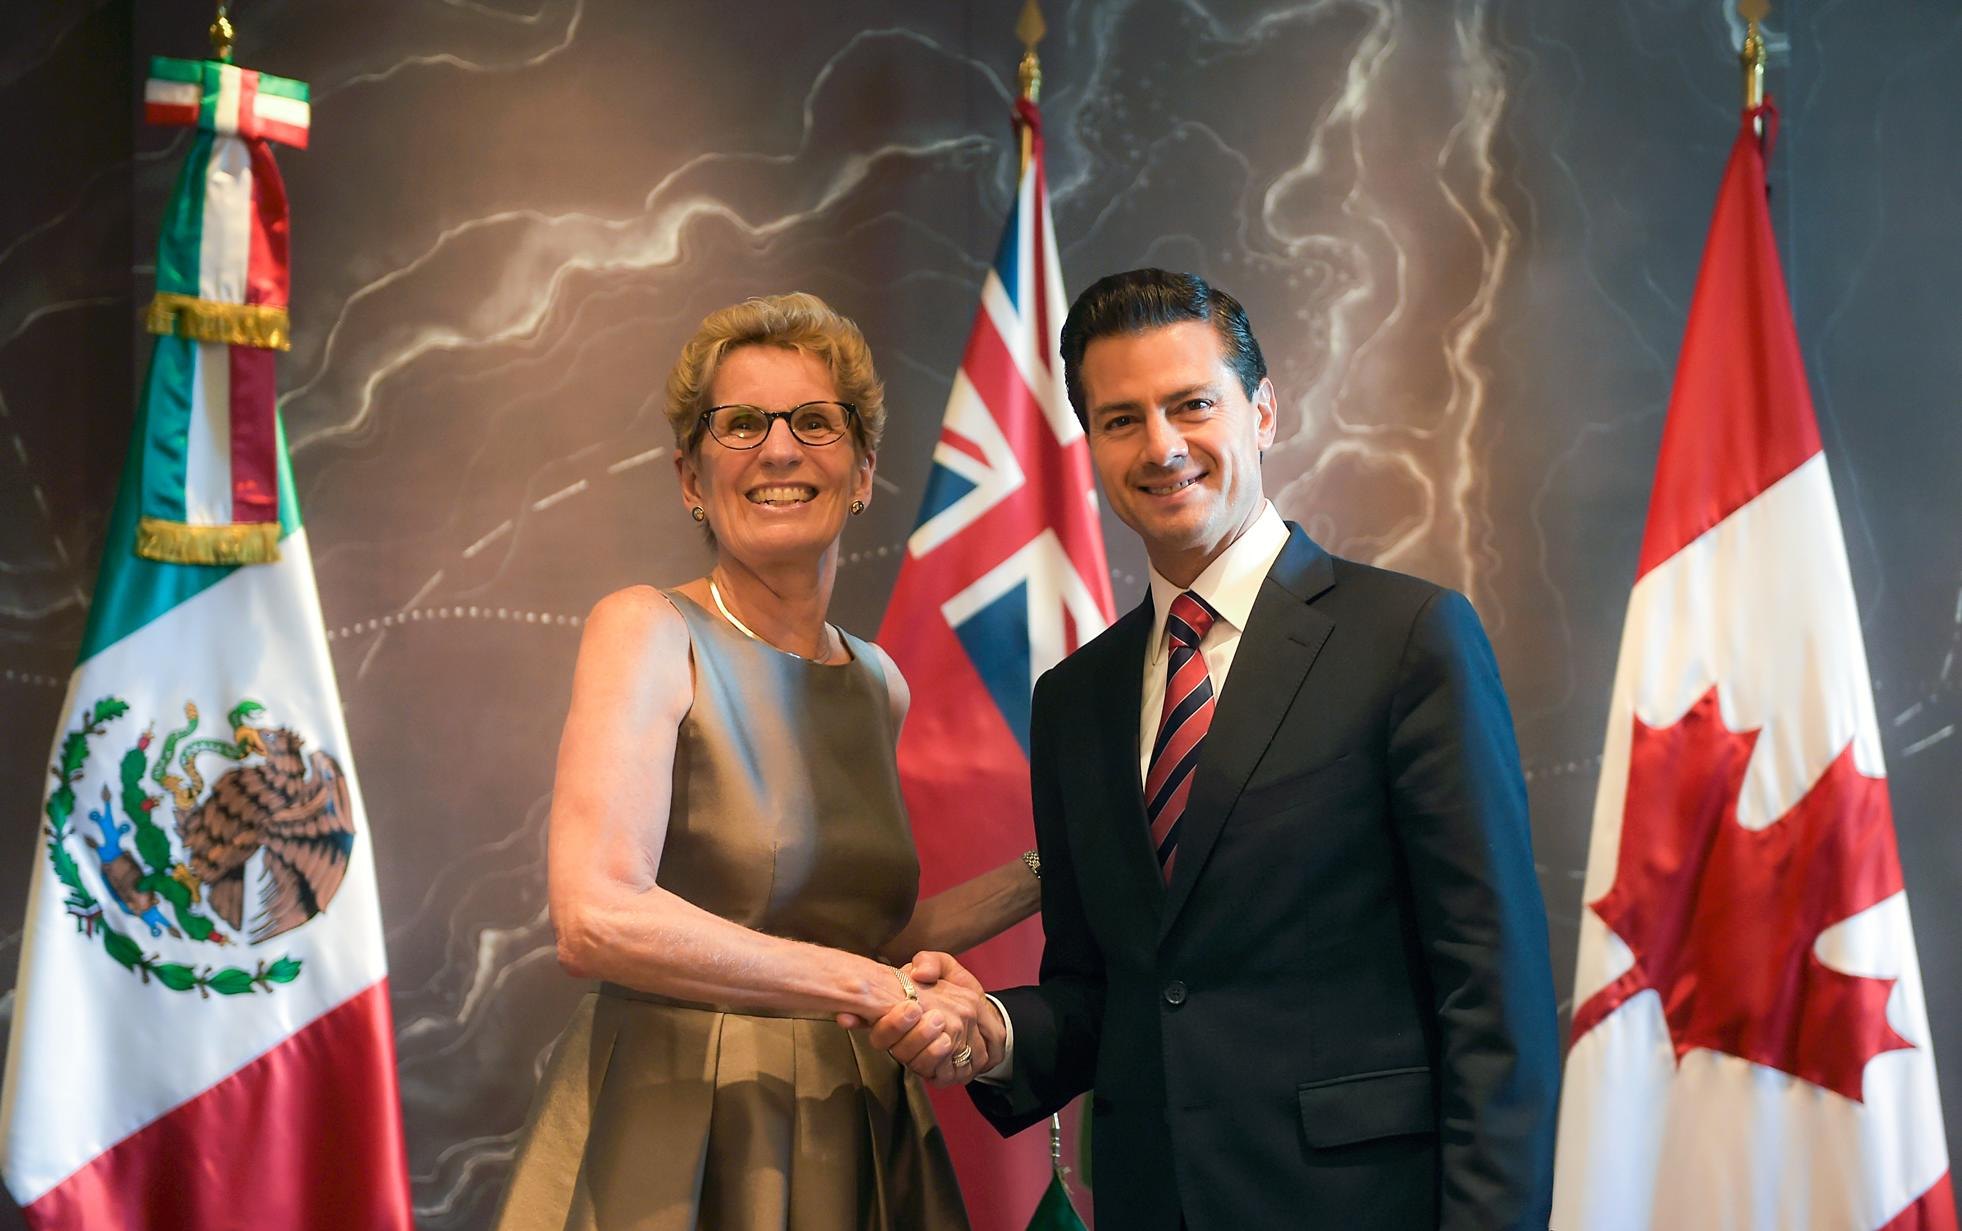 The Mexican president also met with Kathleen Wynne, Premier of the Province of Ontario.